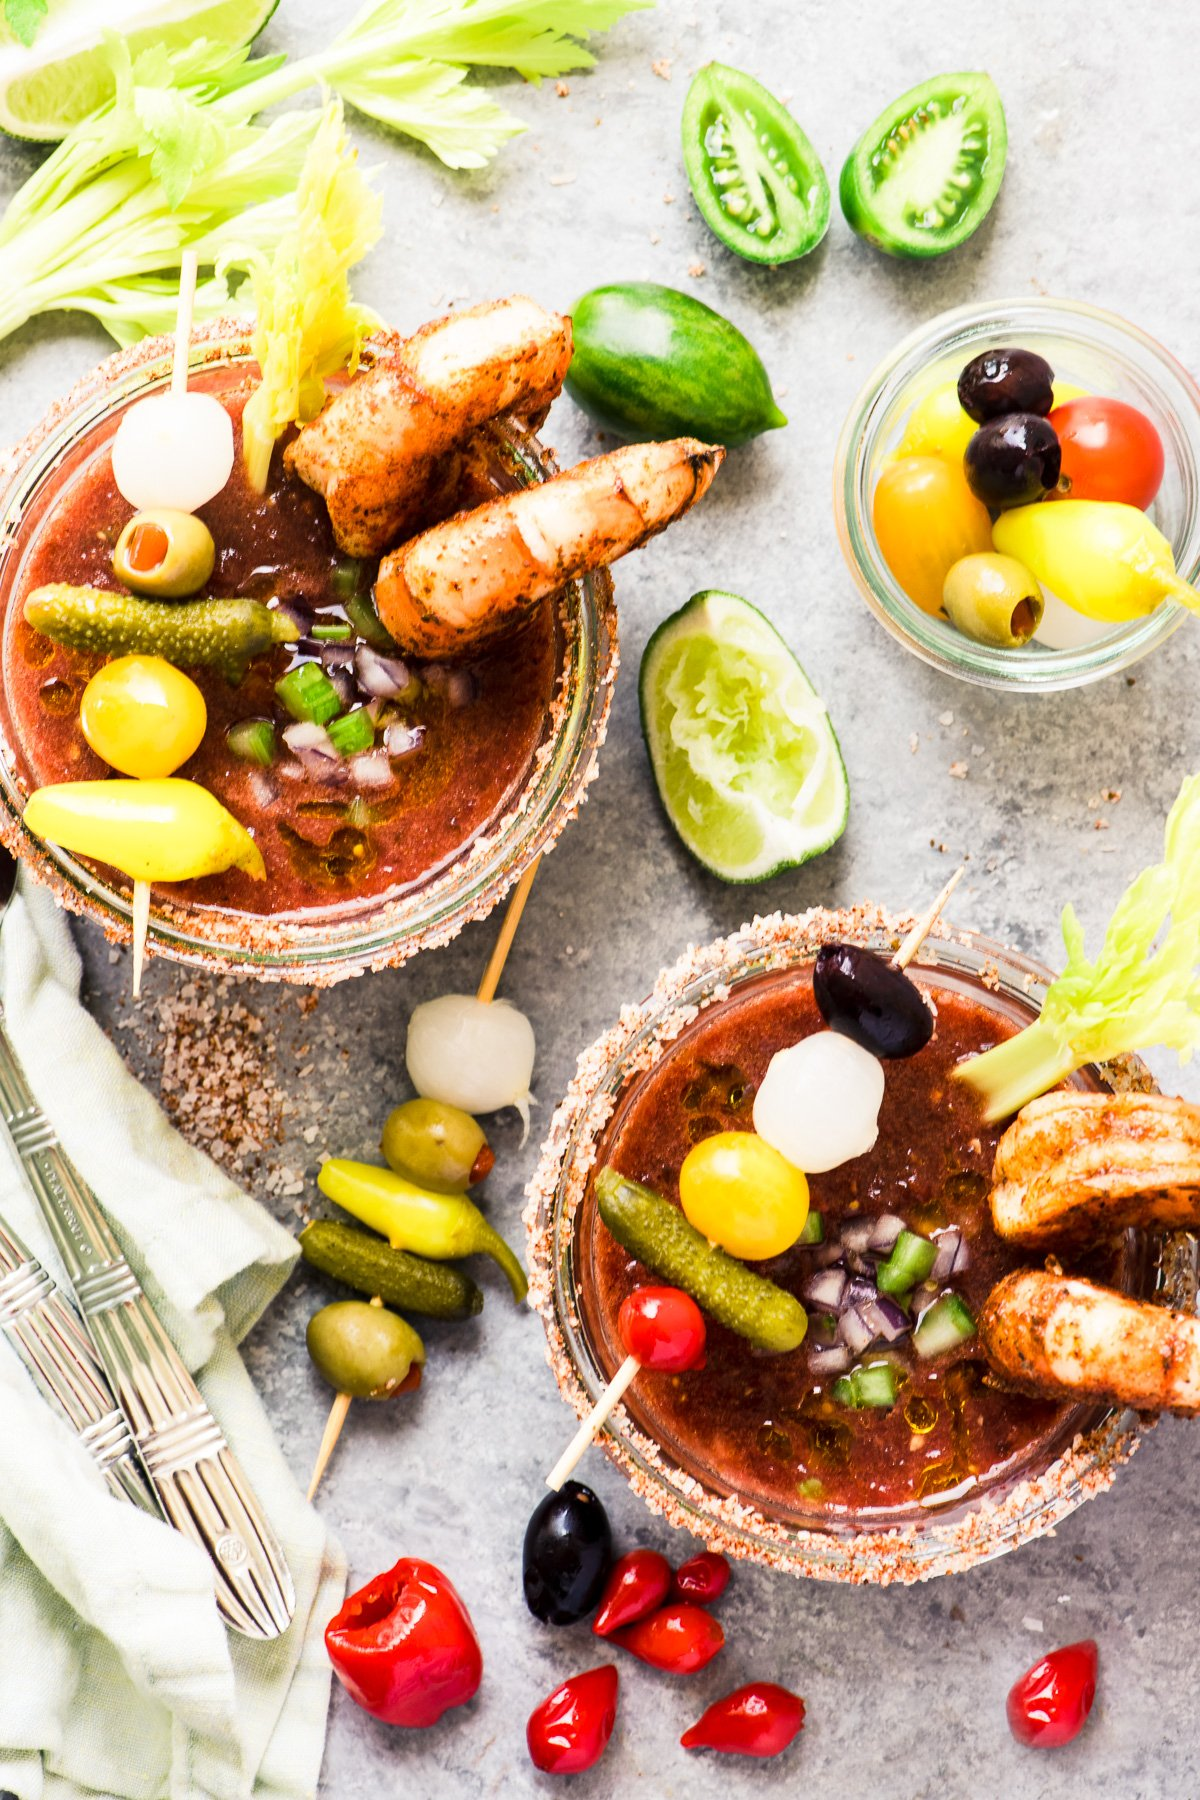 Bloody Mary Gazpacho in small glasses with colorful garnishes